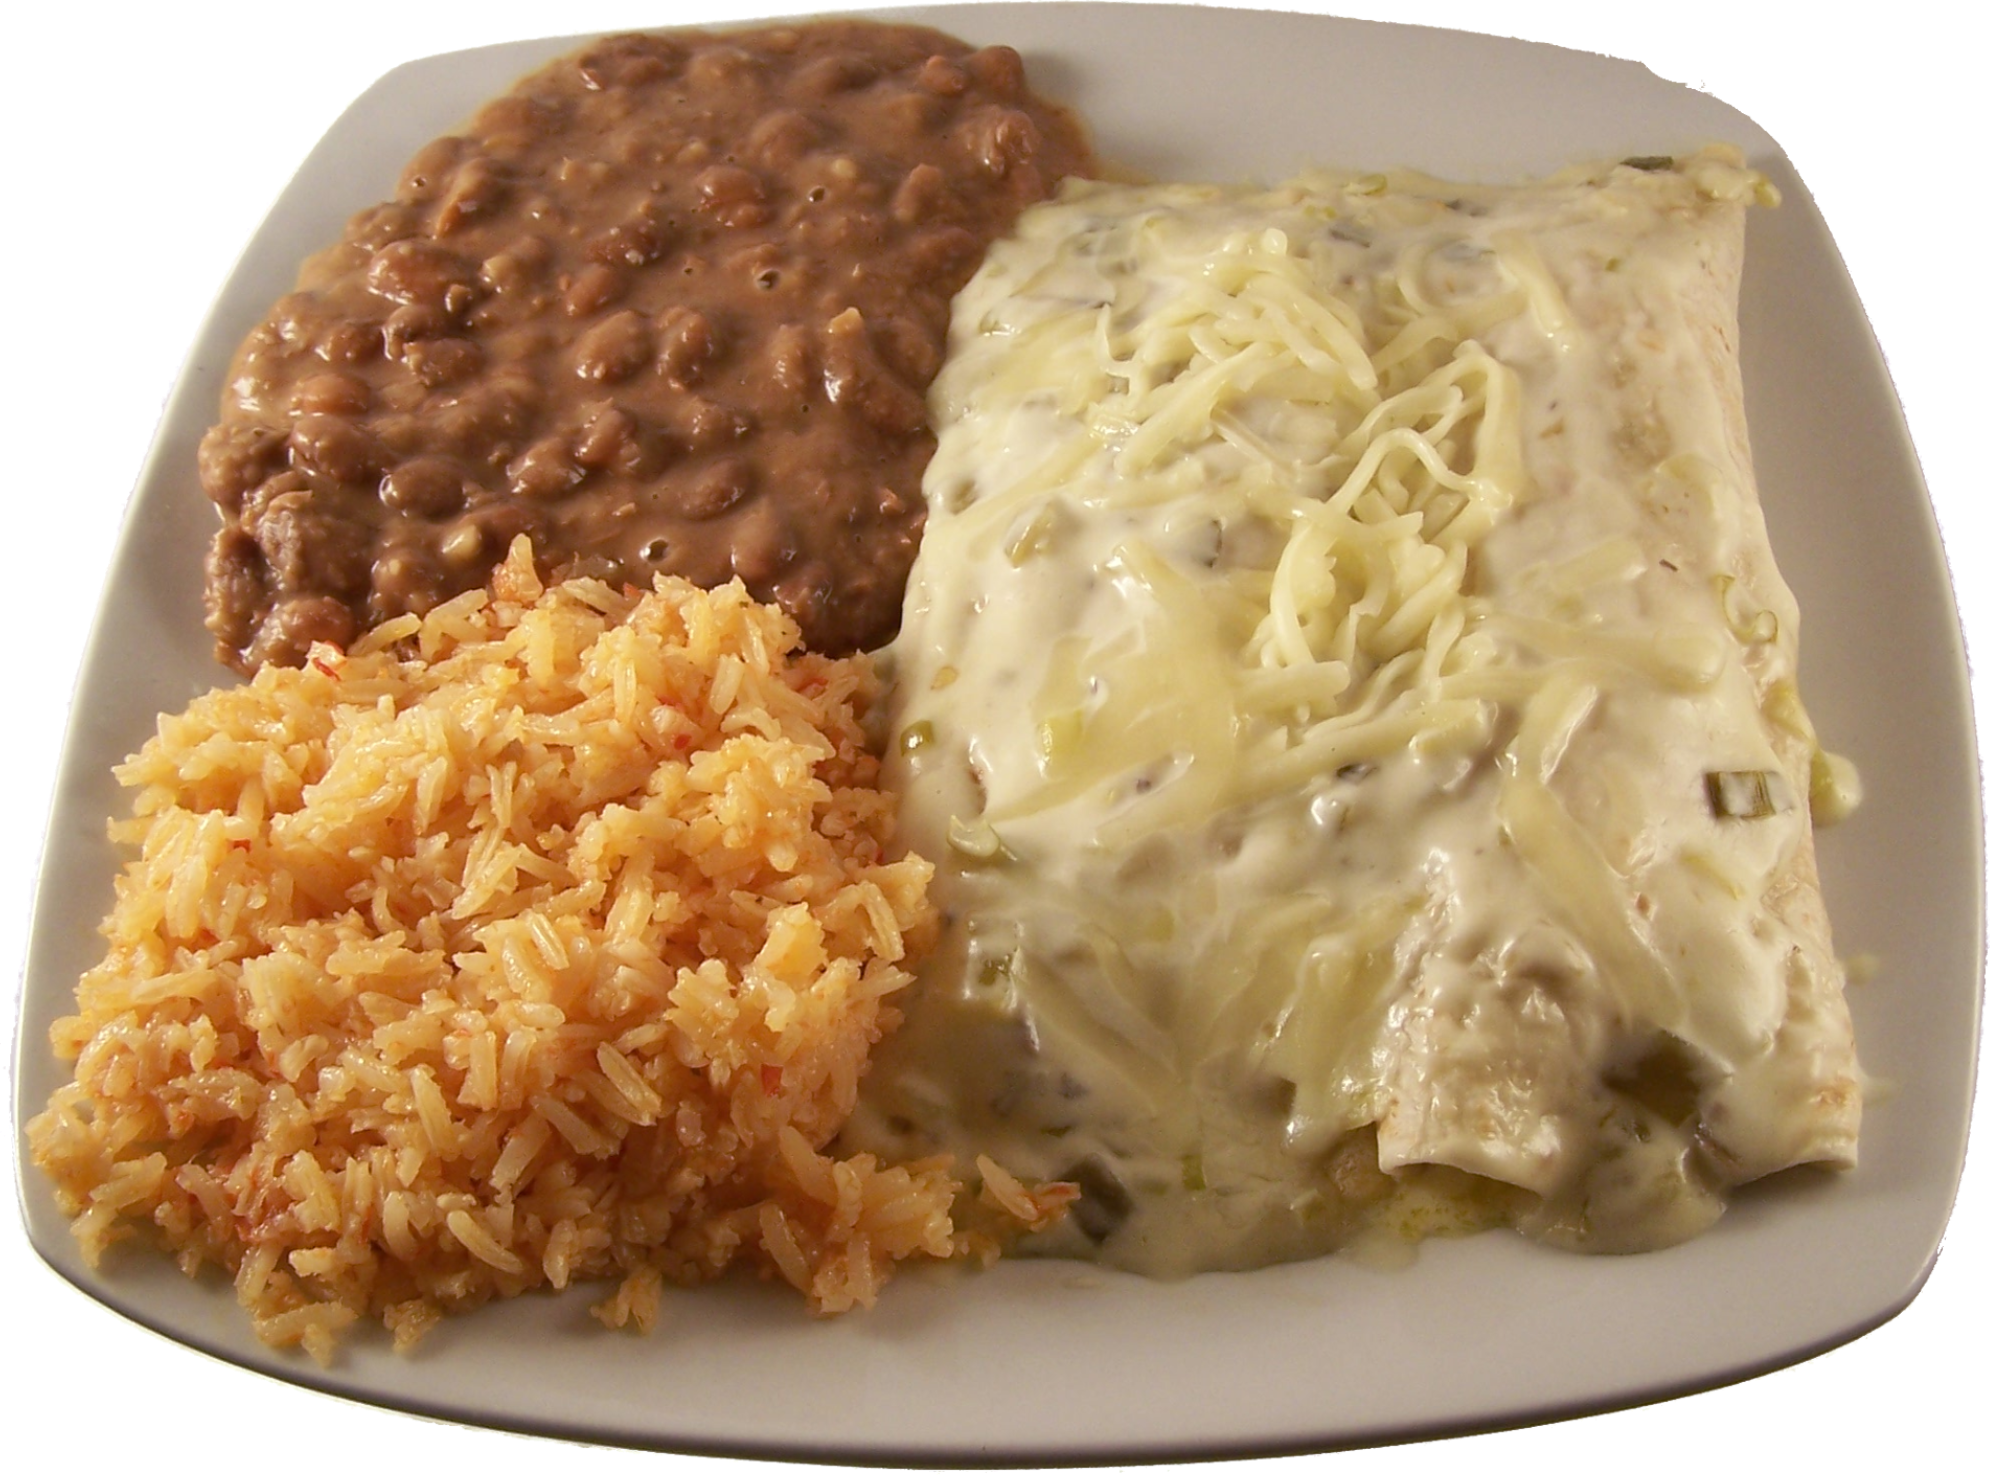 Enchiladas Suizas Two flour tortilla chicken enchiladas topped with our special suiza sauce and cheese. Served with your choice of two sides $16.99